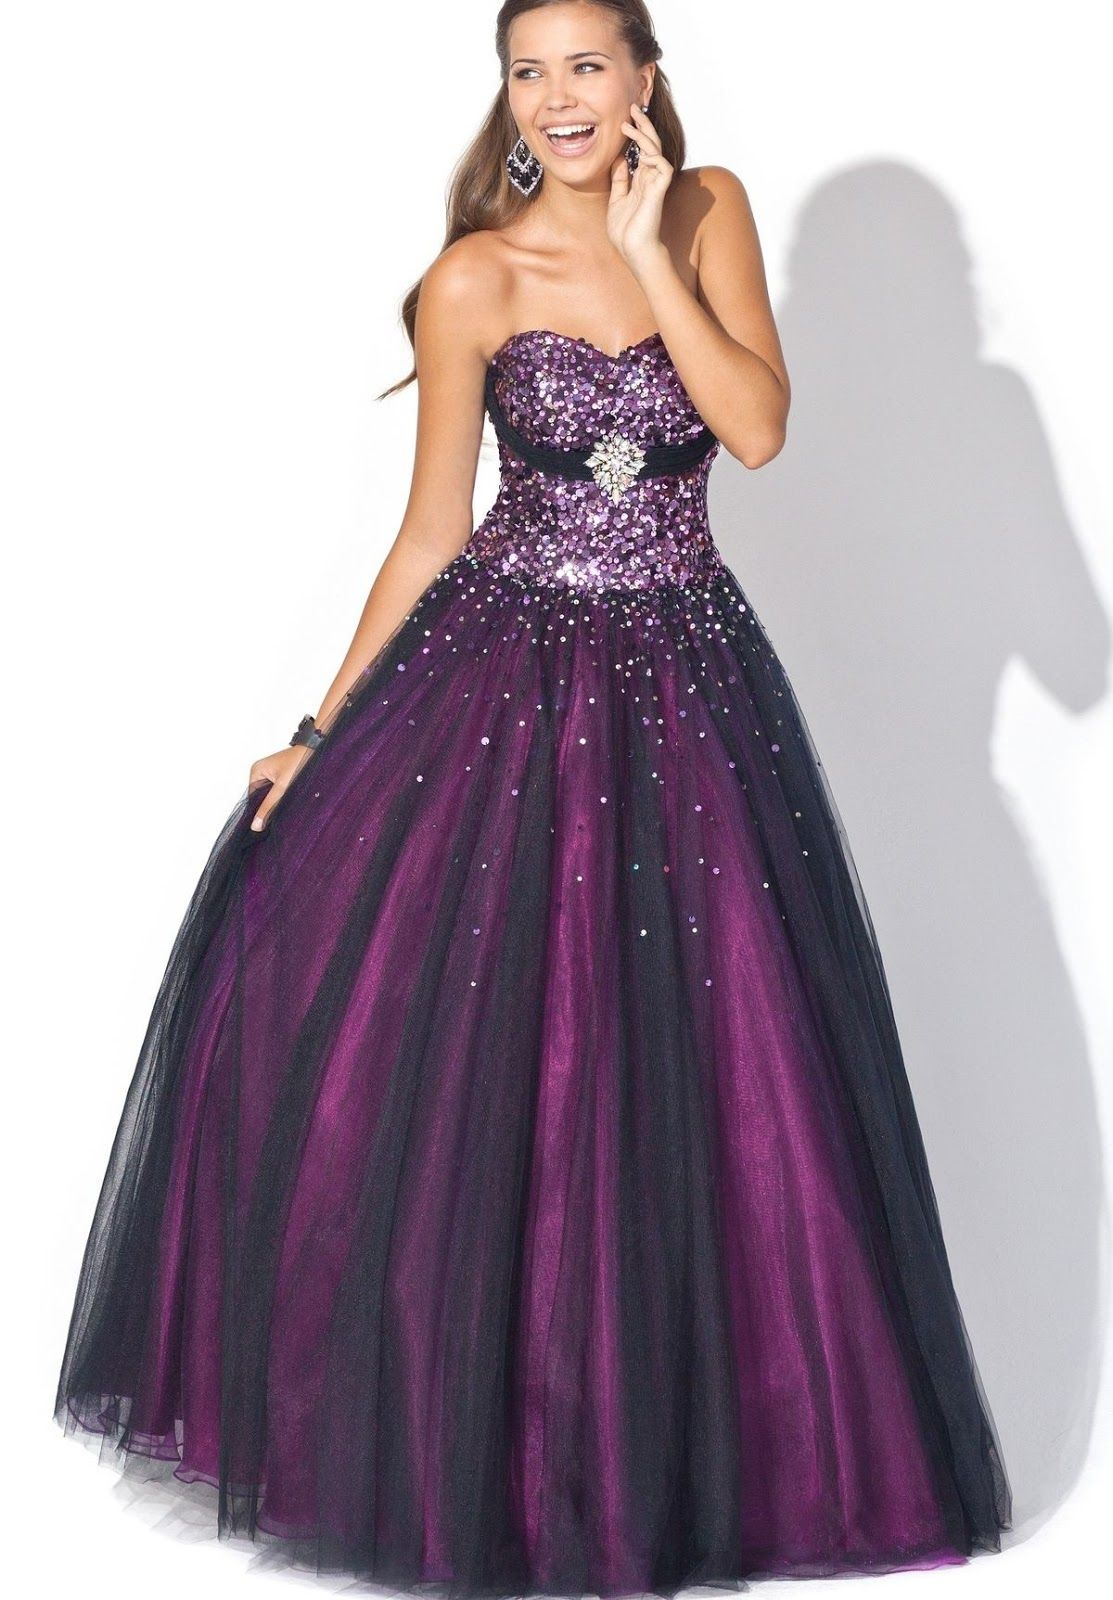 17 Best images about Ball gowns on Pinterest | Maternity evening ...